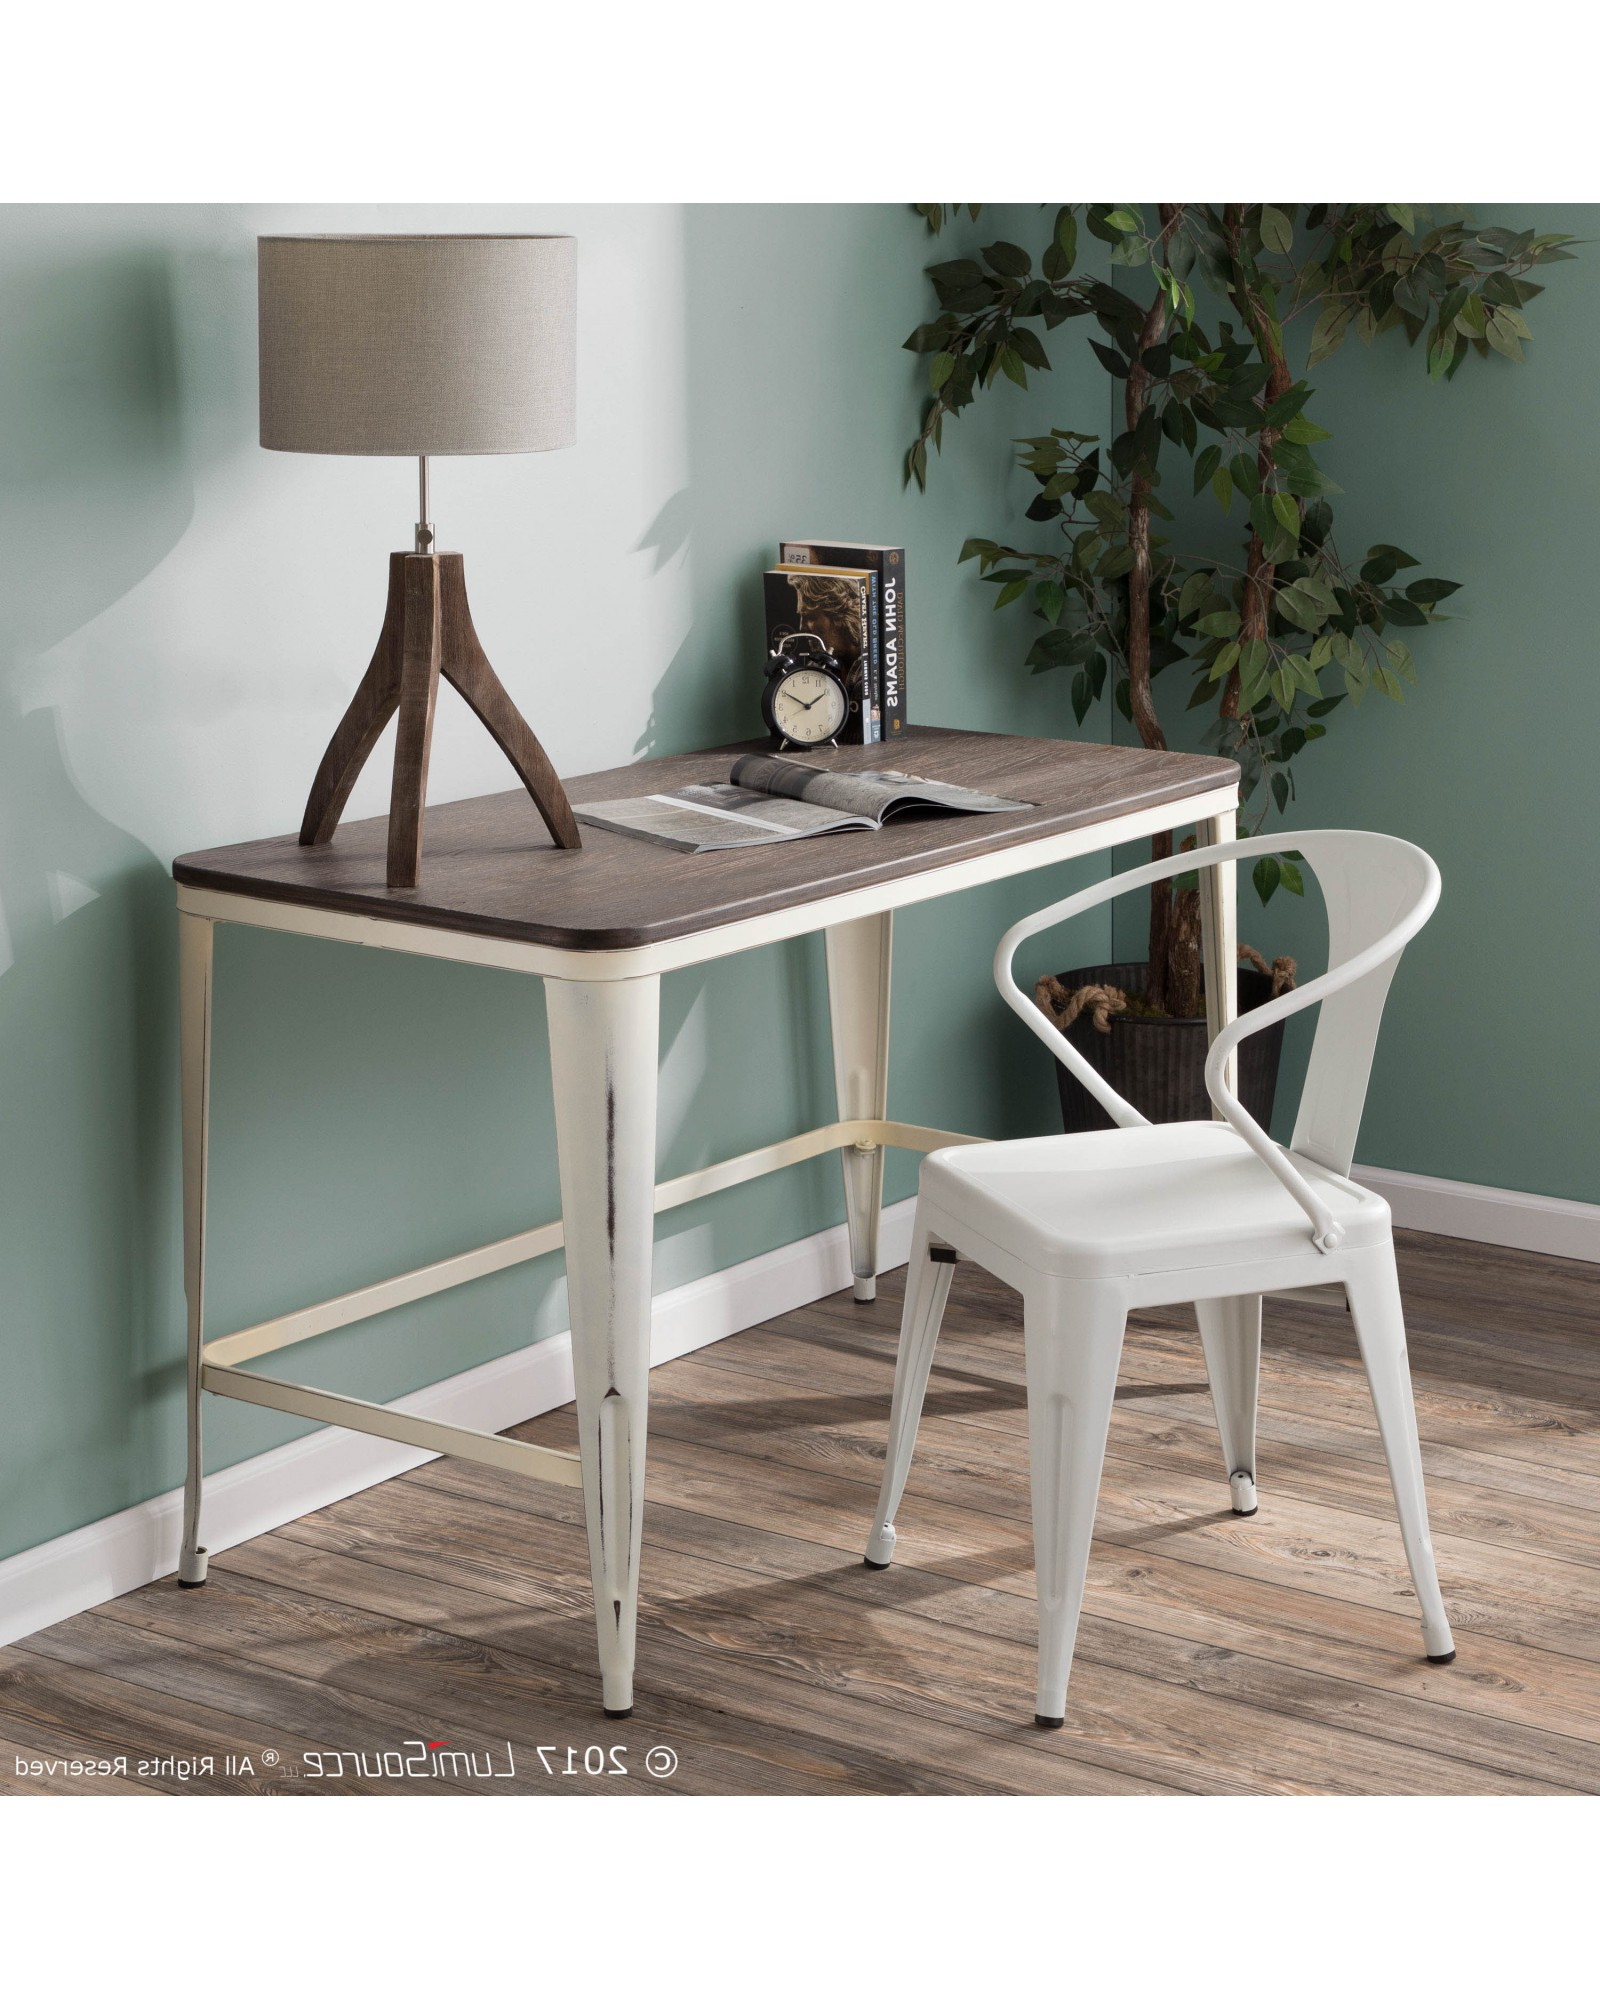 Newest Pia Industrial Desk – Pia Industrial Desk In Vintage Cream In Vintage Cream Frame And Espresso Bamboo Dining Tables (Gallery 19 of 30)